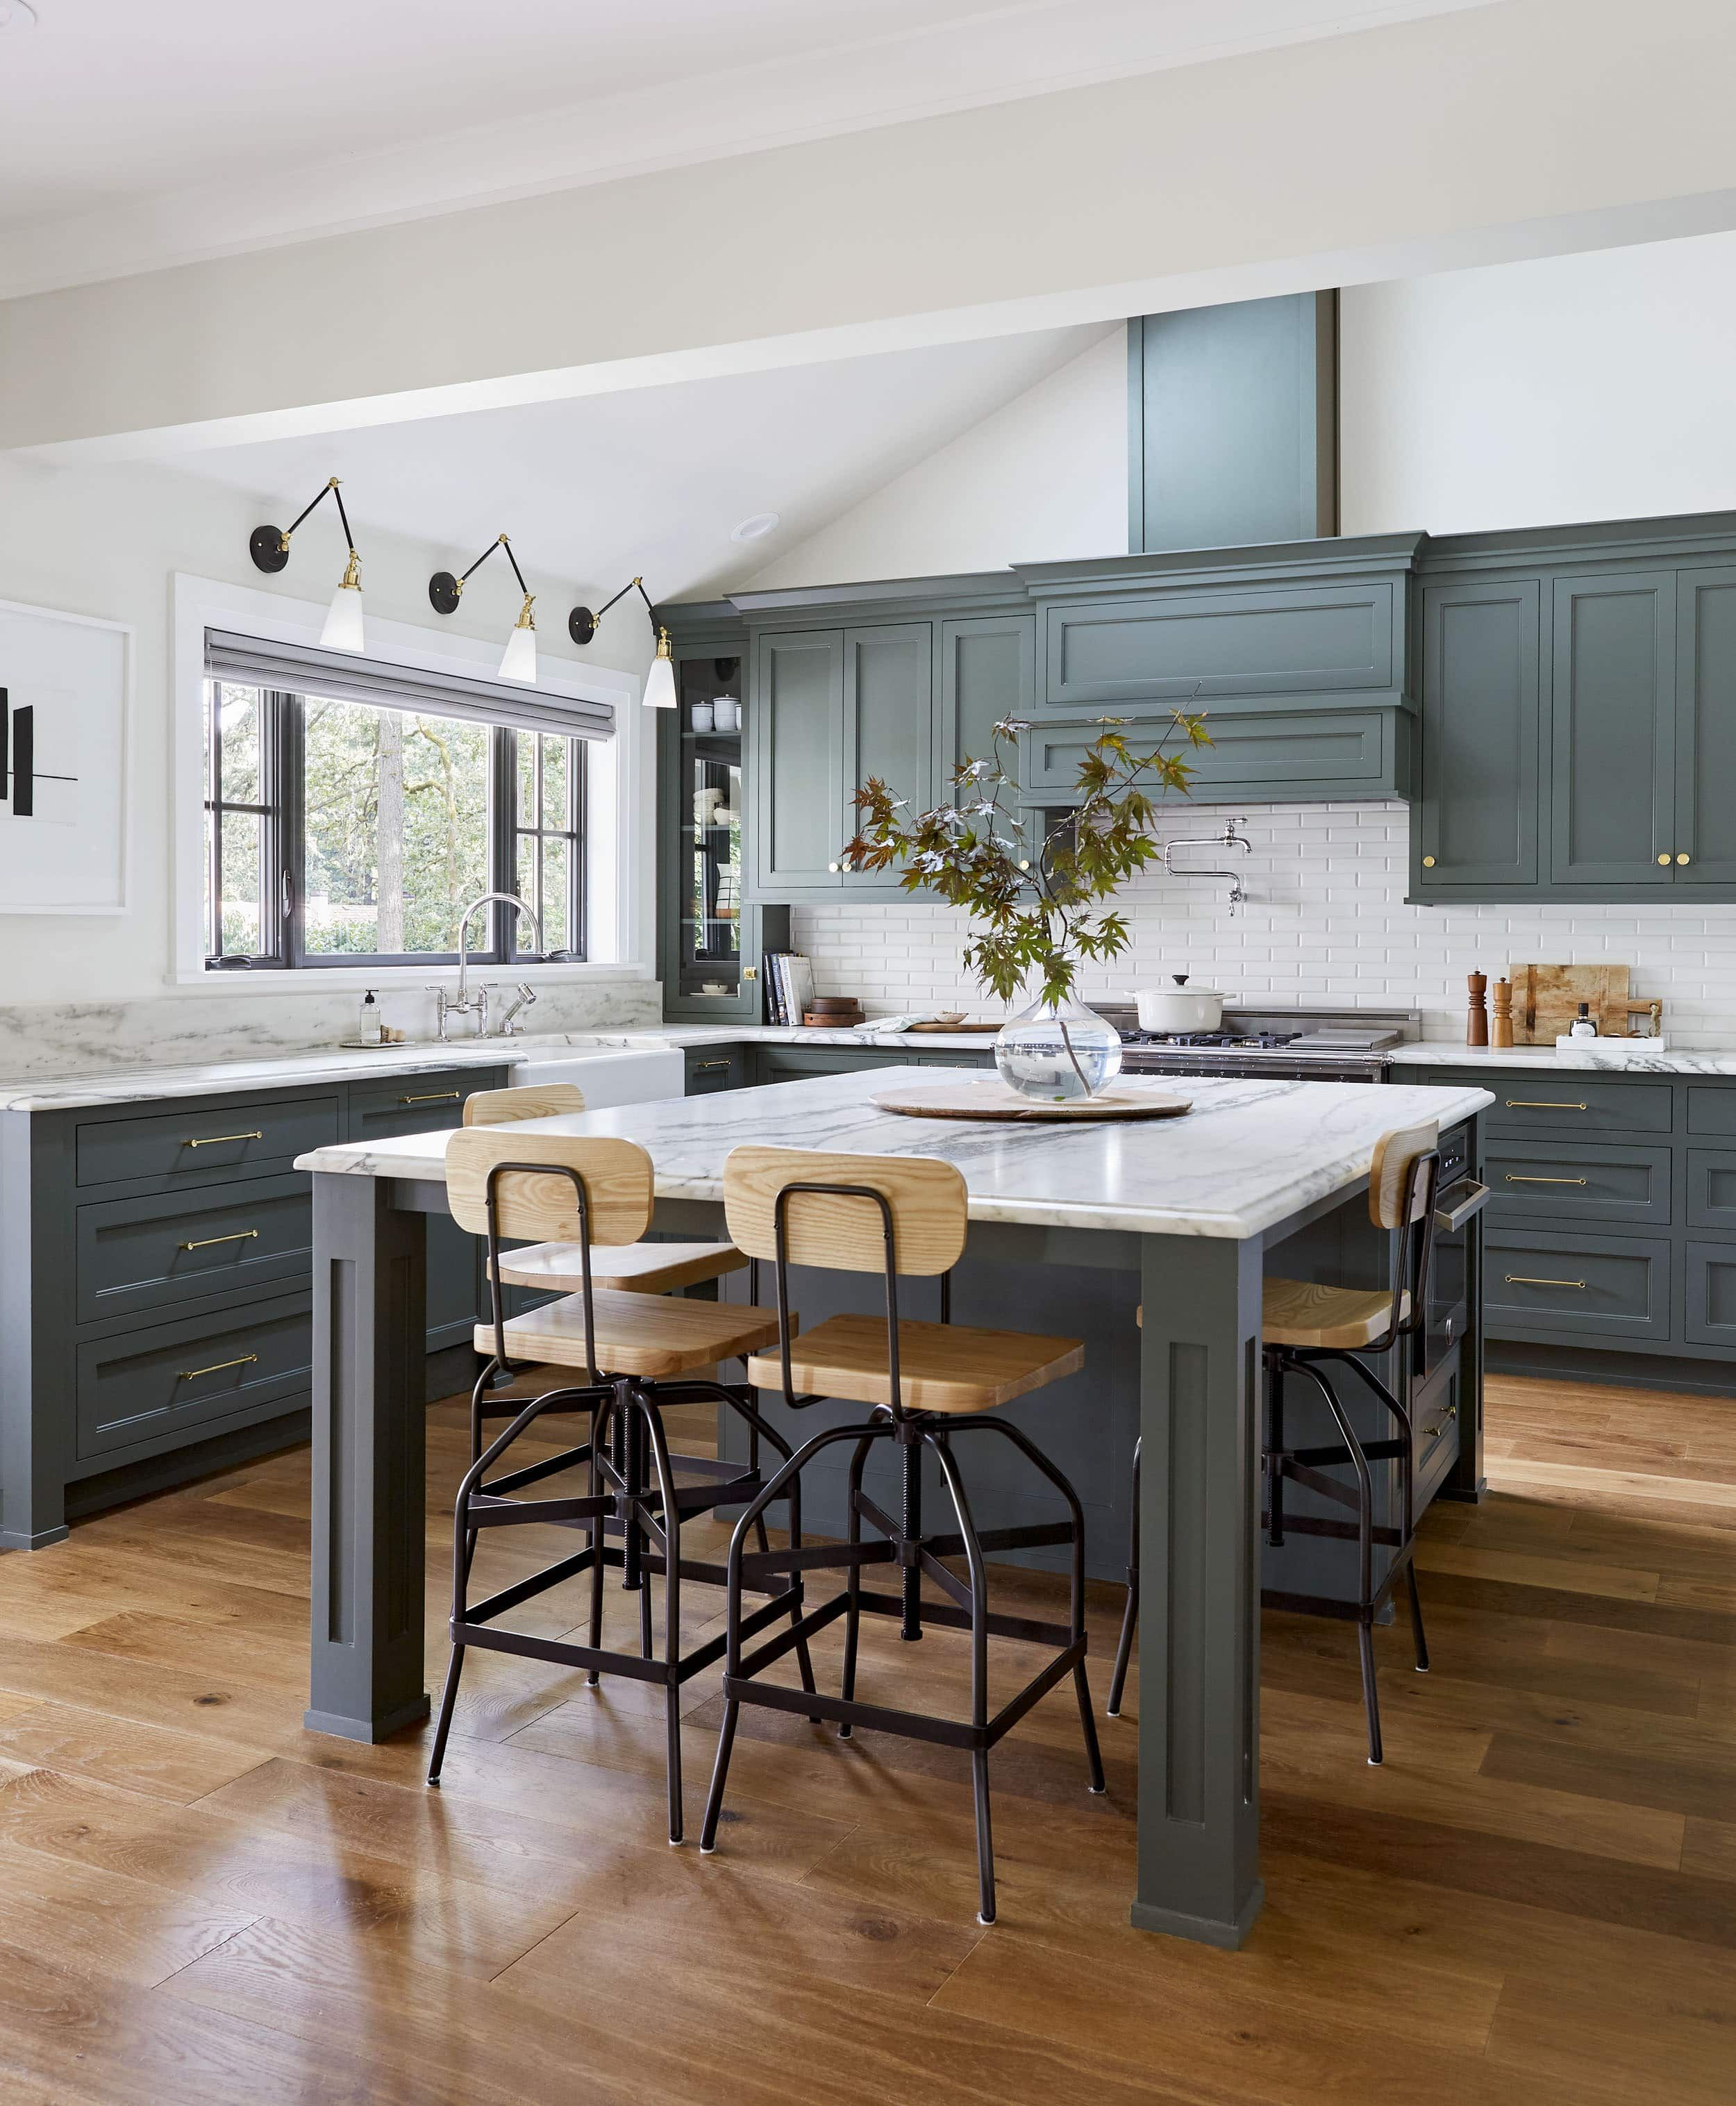 All The What S Why S How Much S Of The Portland Kitchen Big Reveal Emily Henderson Kitchen Remodeling Projects Kitchen Design Interior Design Kitchen